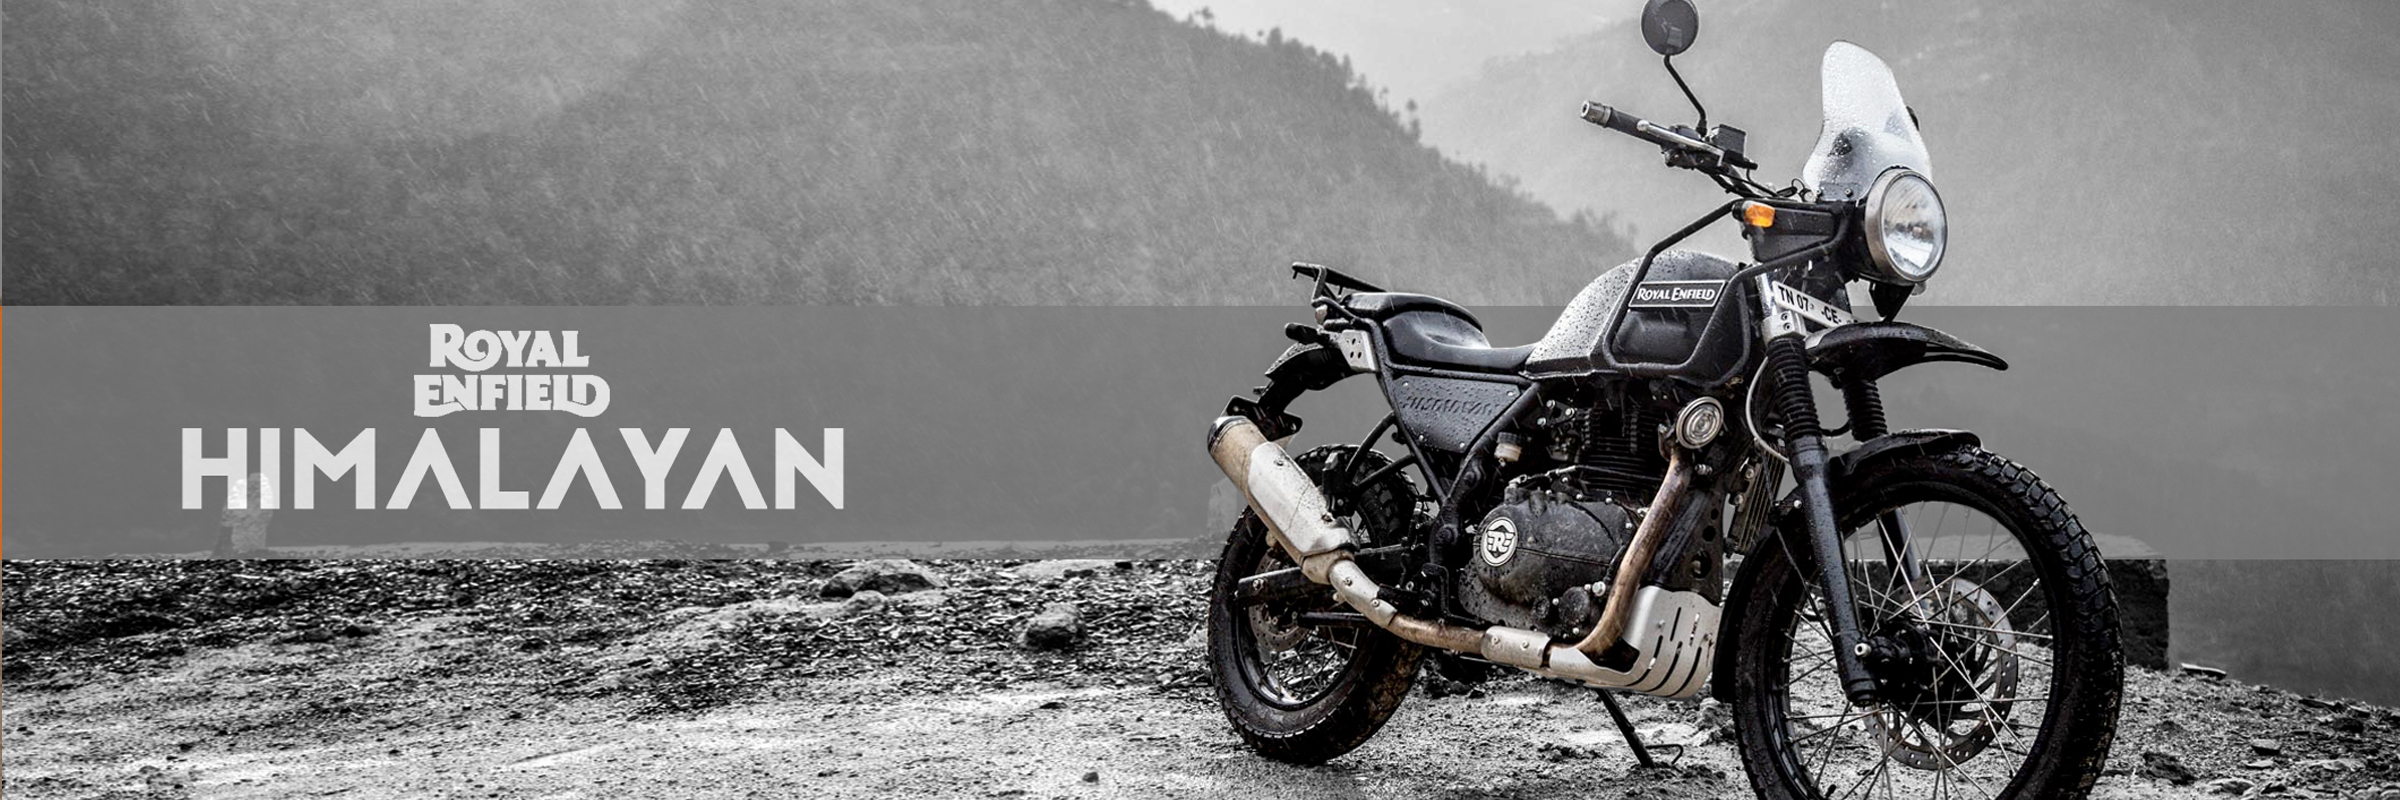 HIMALAYAN - BUILT FOR ALL ROADS